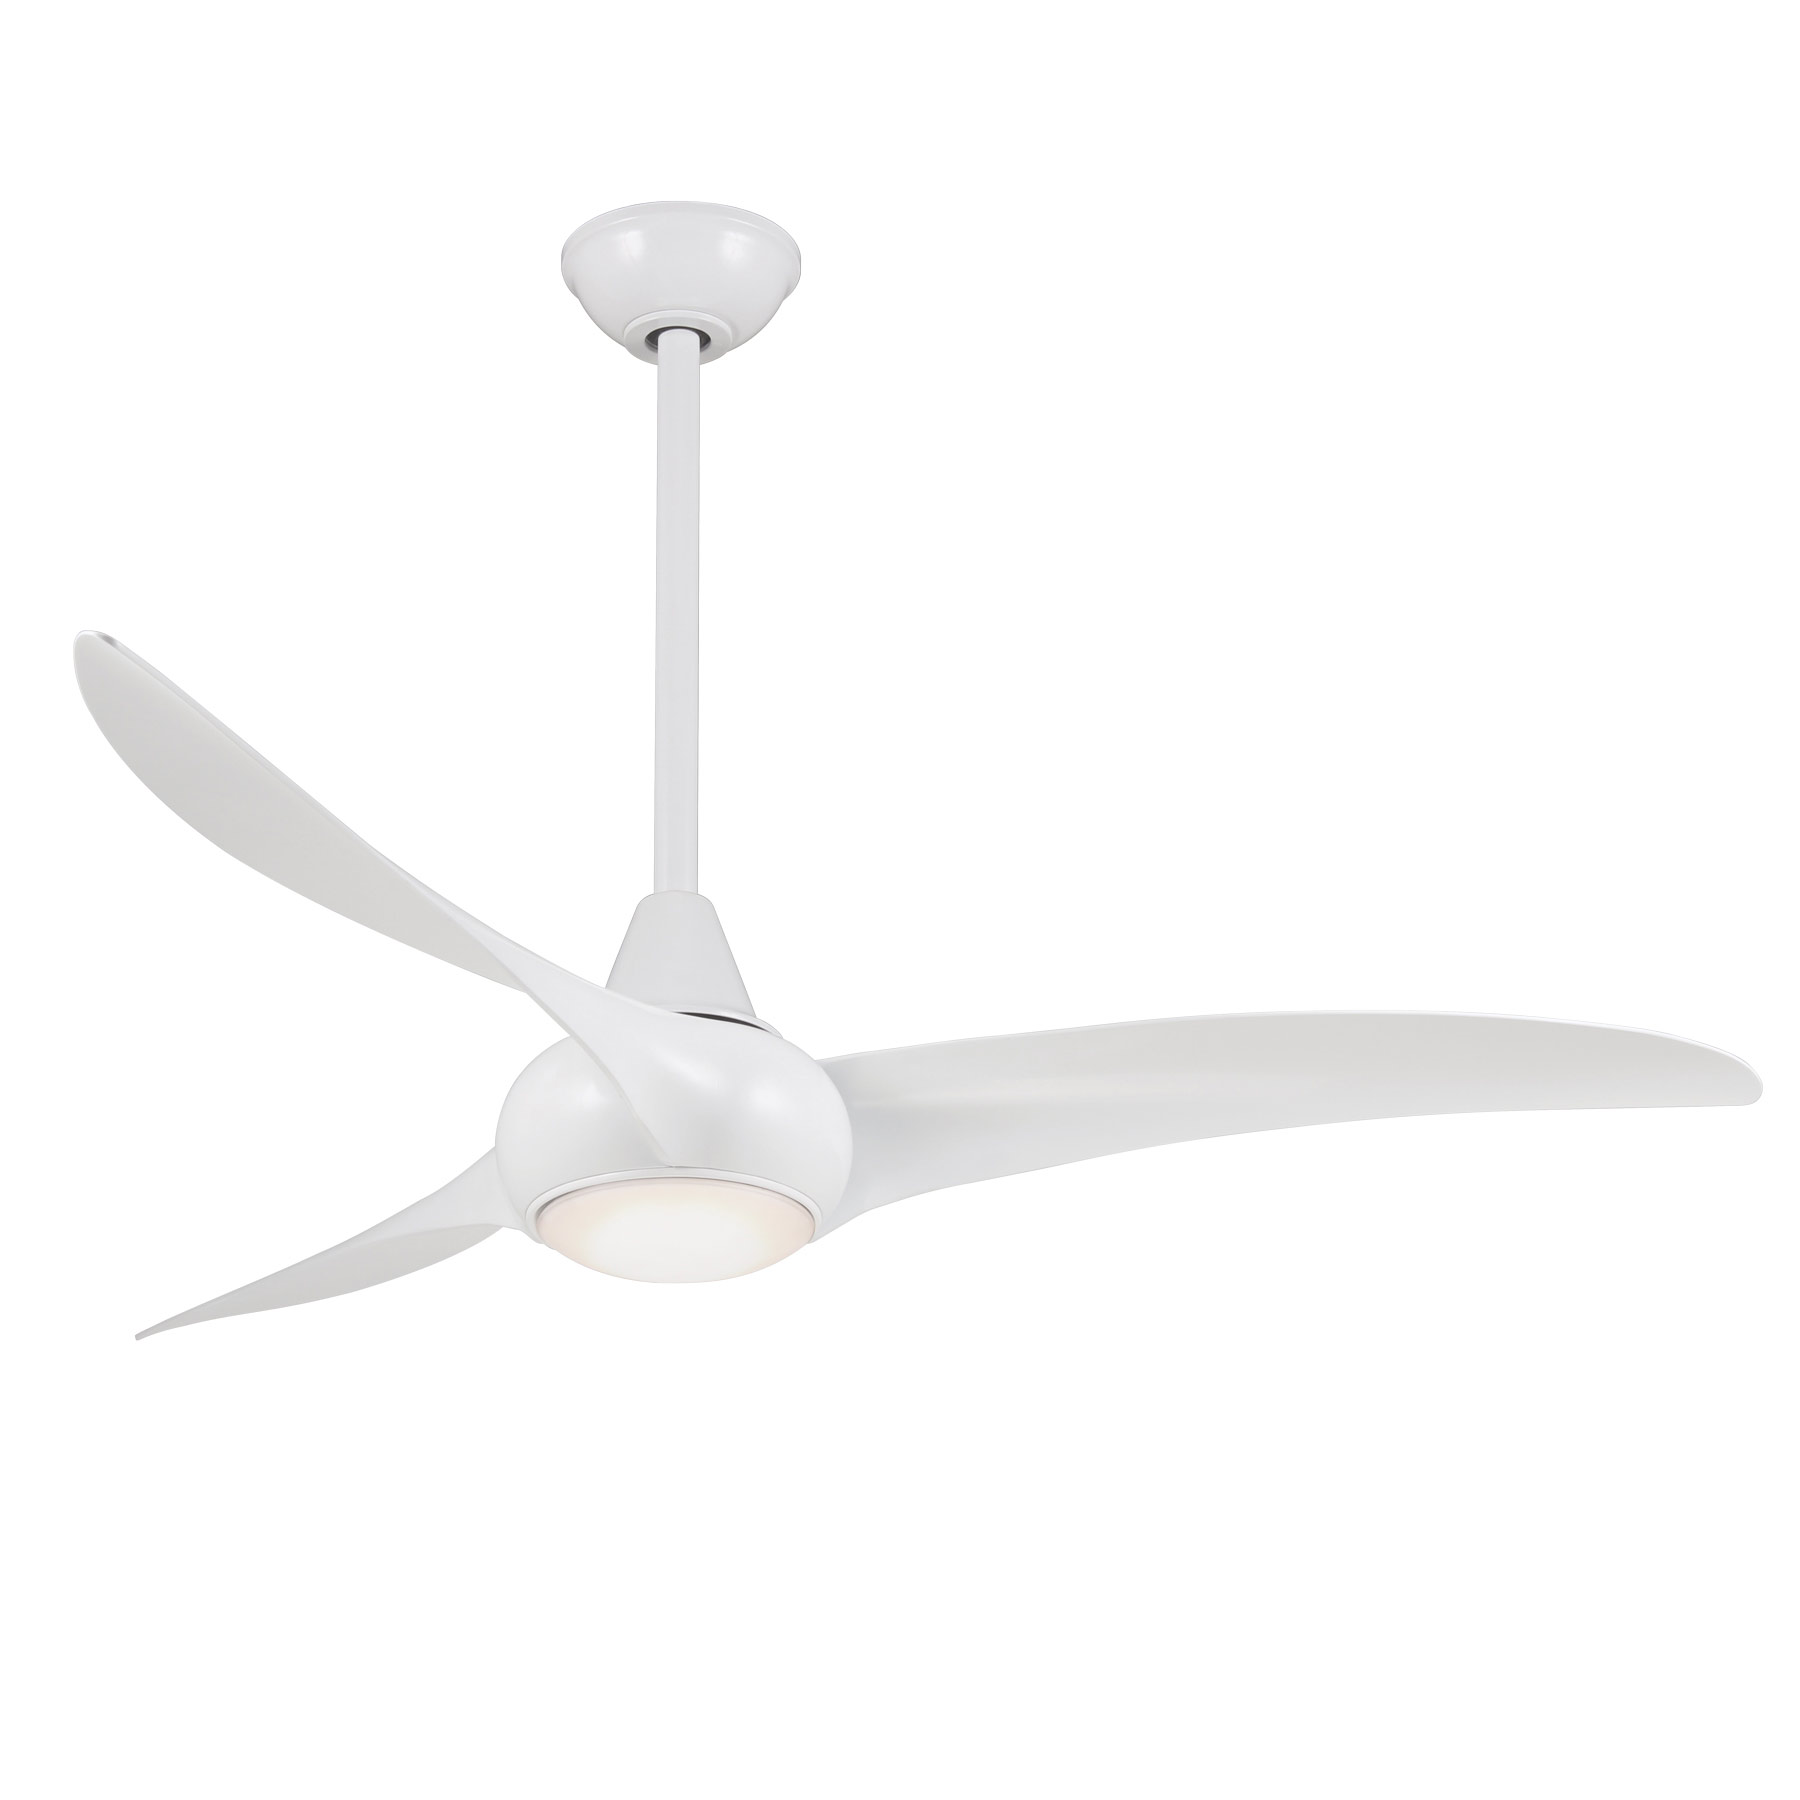 Charmant Light Wave LED Ceiling Fan Download Image ...